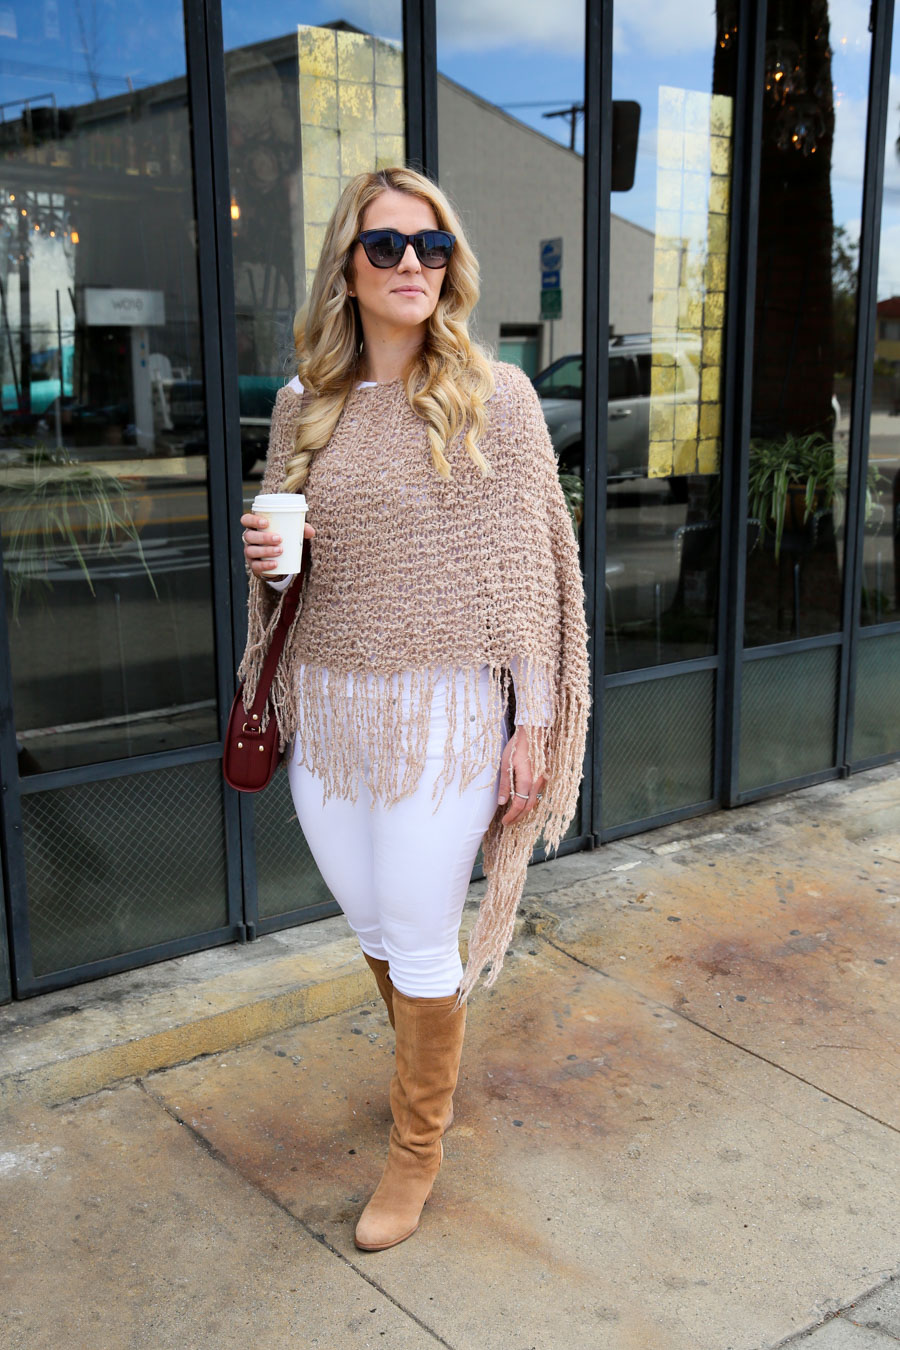 Knit Poncho Outfit w. White Jeans + Boots